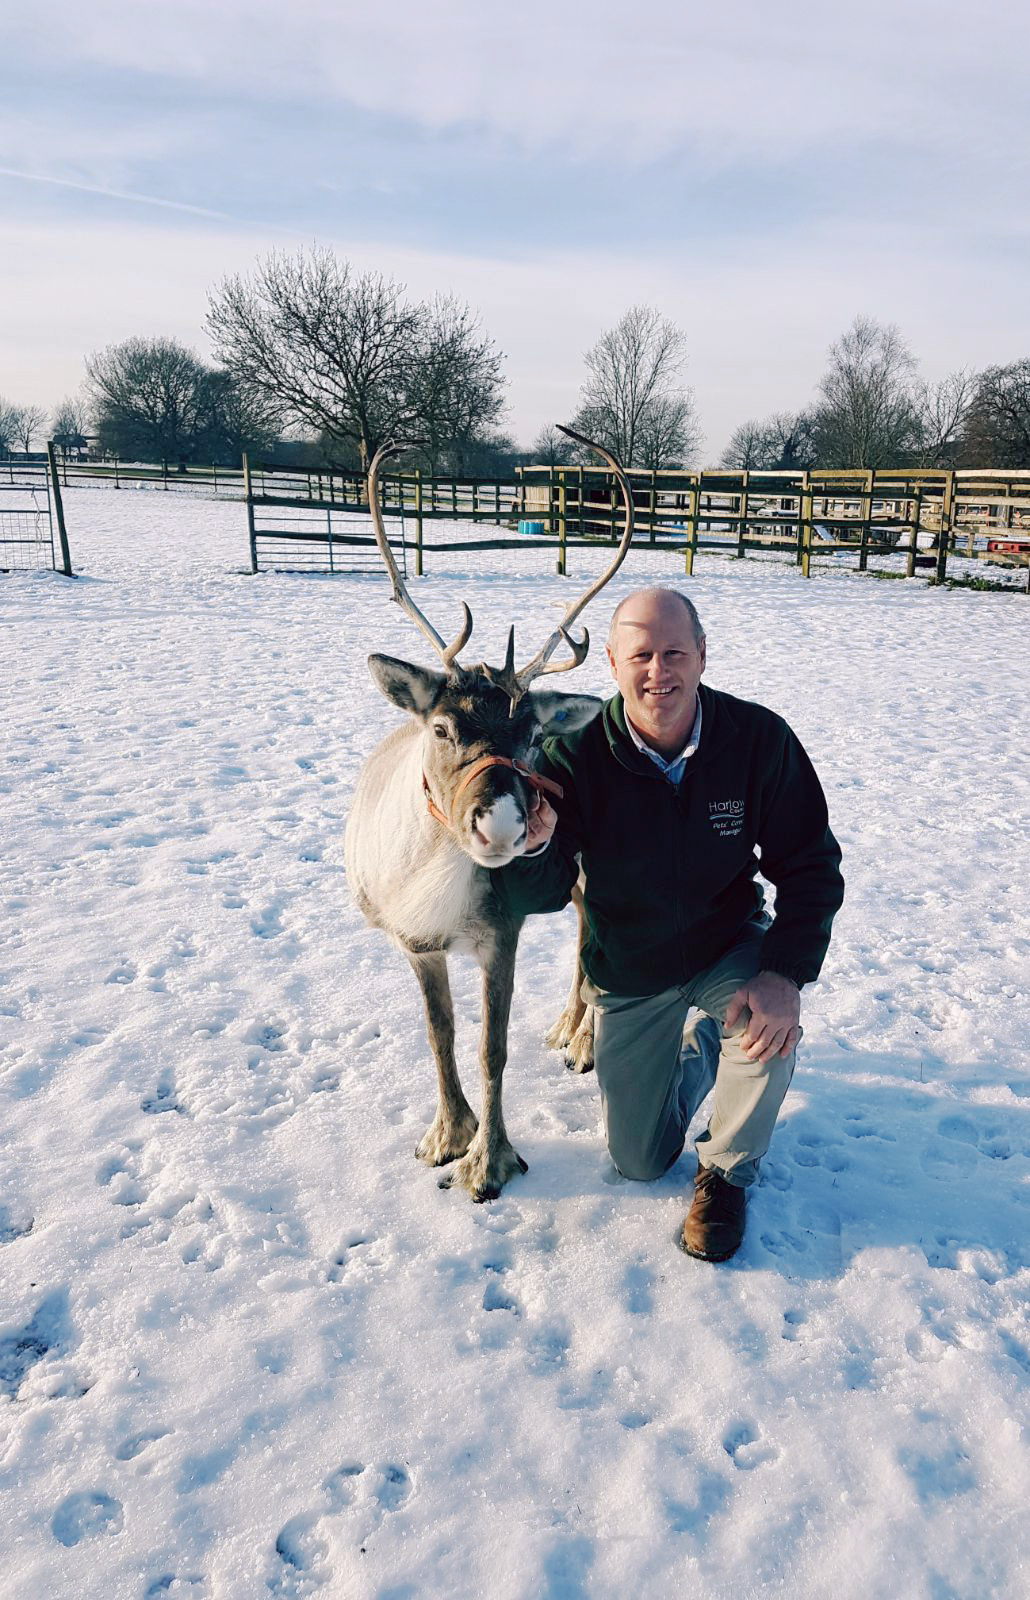 Justin Hopwood with reindeer